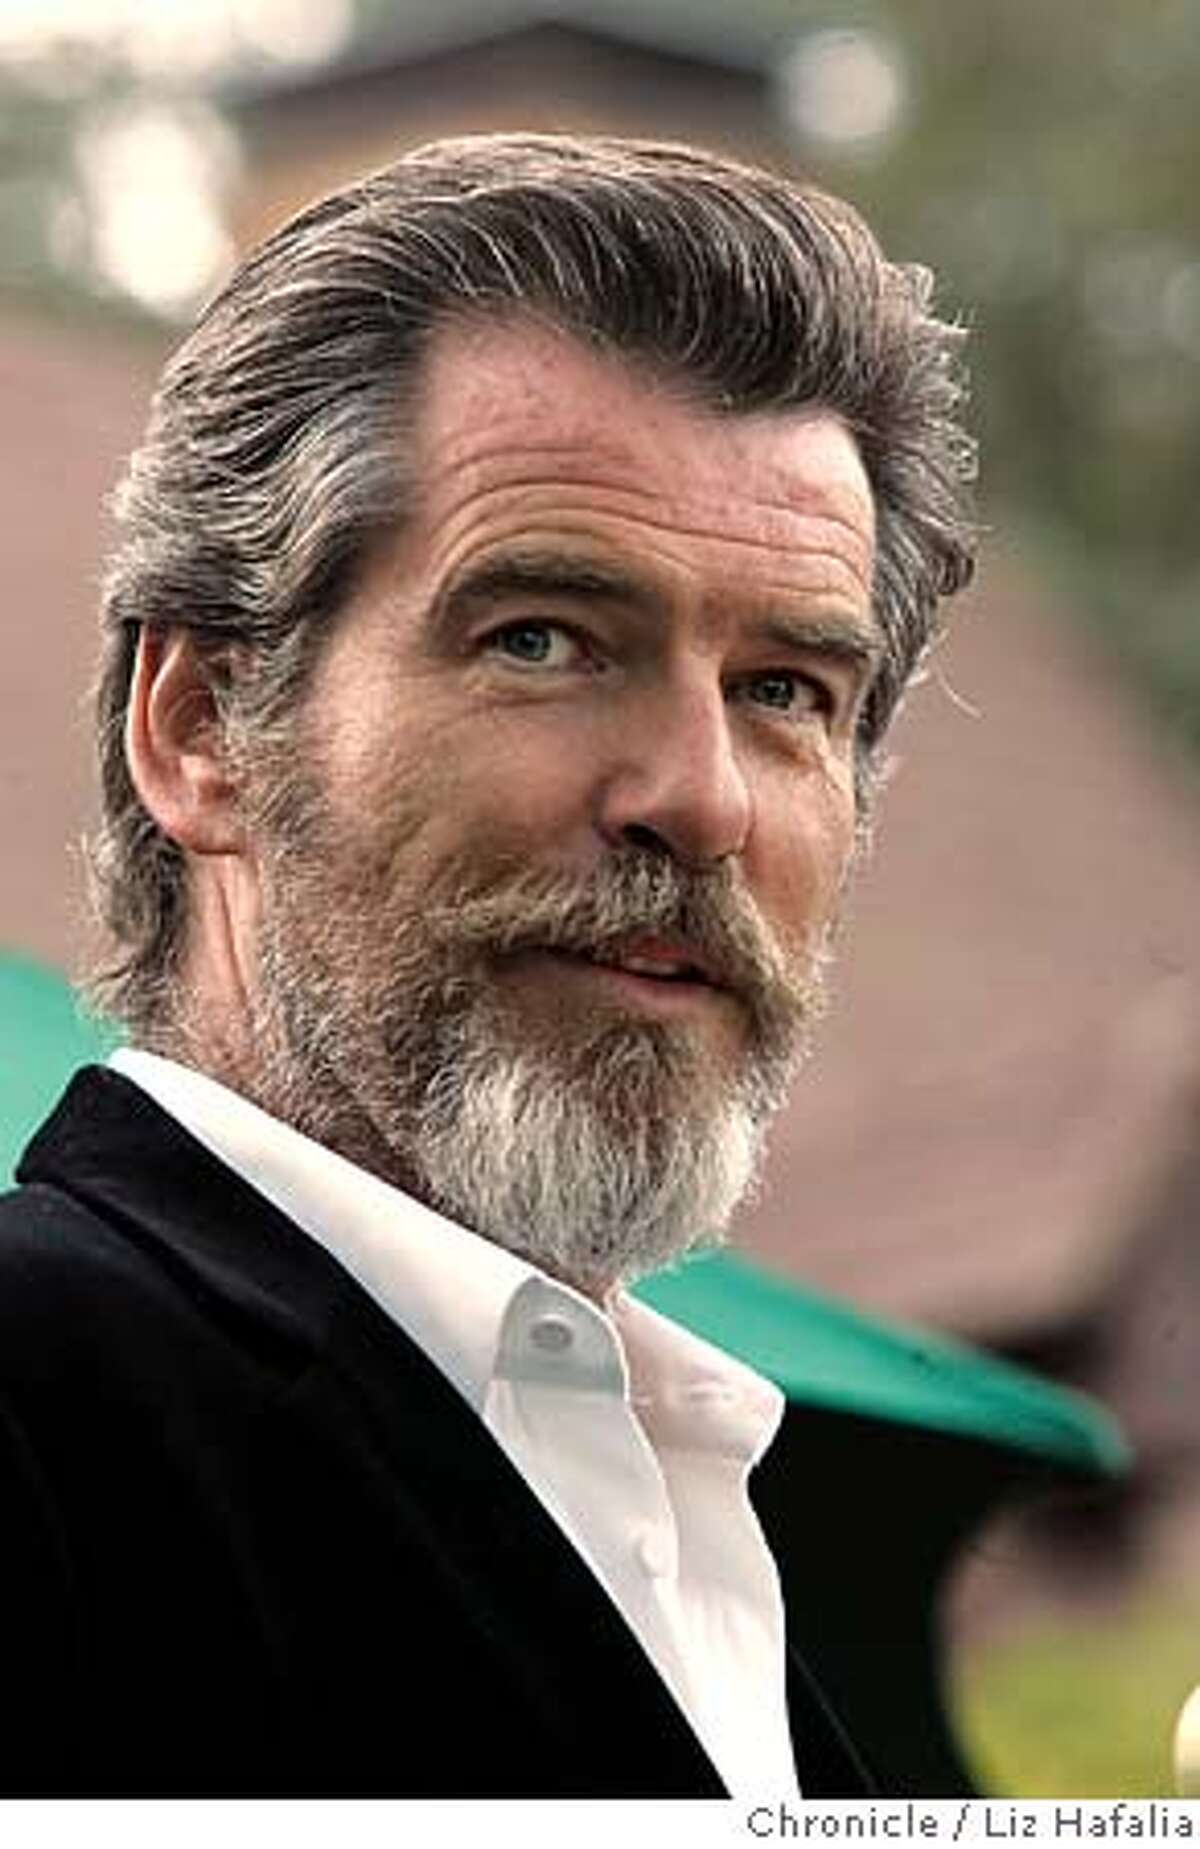 Pierce Brosnan at the opening night of the Mill Valley Film Festival during the pre-party at the Outdoor Art Club. Photographed by Liz Hafalia on 10/6/05 in Mill Valley, California. SFC Creditted to the San Francisco Chronicle/Liz Hafalia